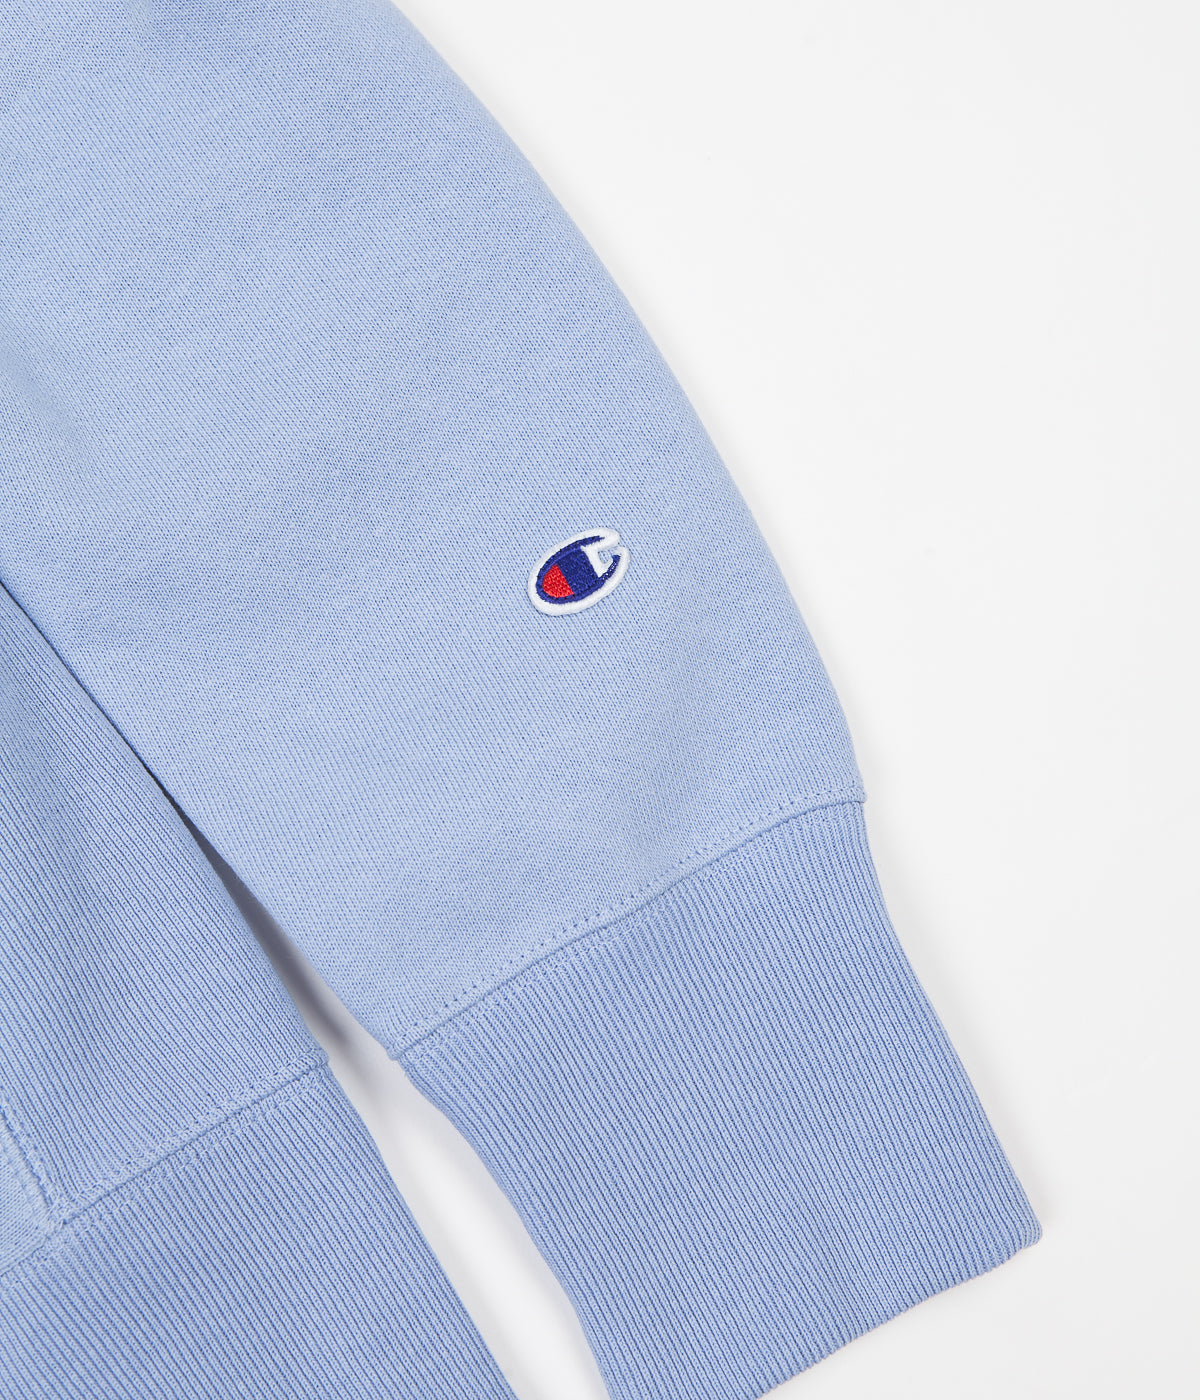 Champion Reverse Weave Classic Crewneck Sweatshirt - Light Blue